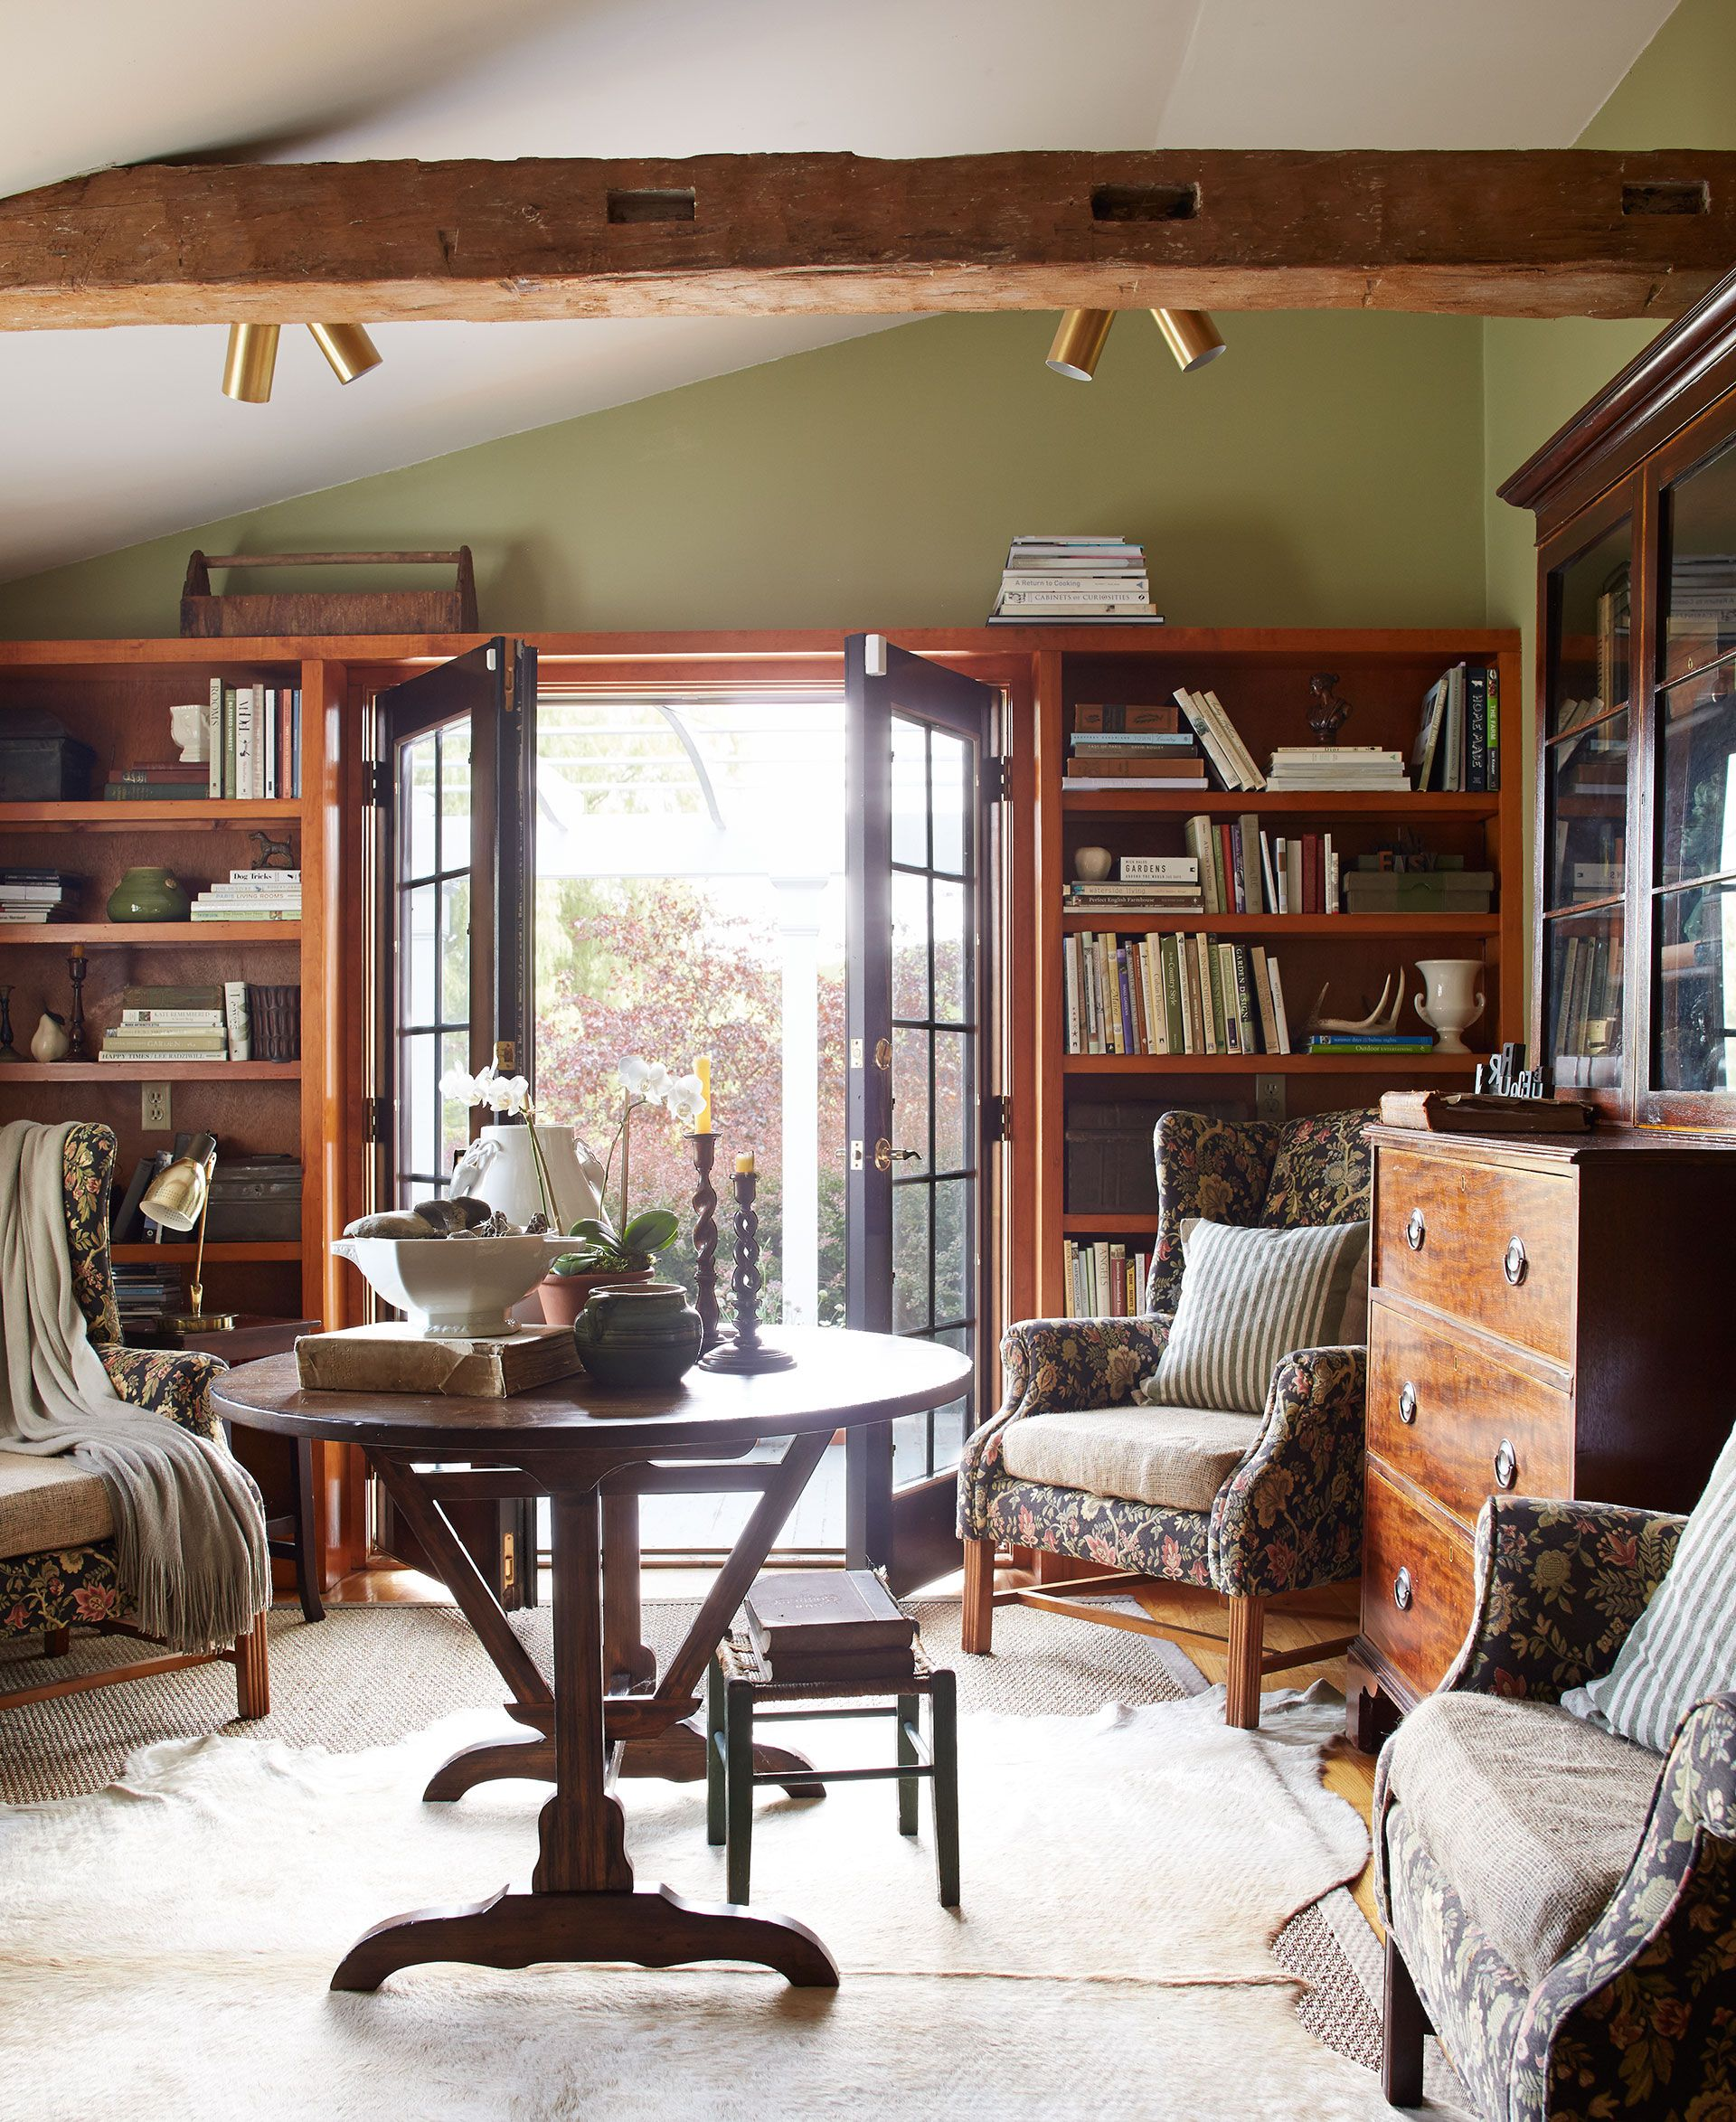 In the library, mismatched wingback chairs are unified with floral brocade upholstery and burlap cushions.